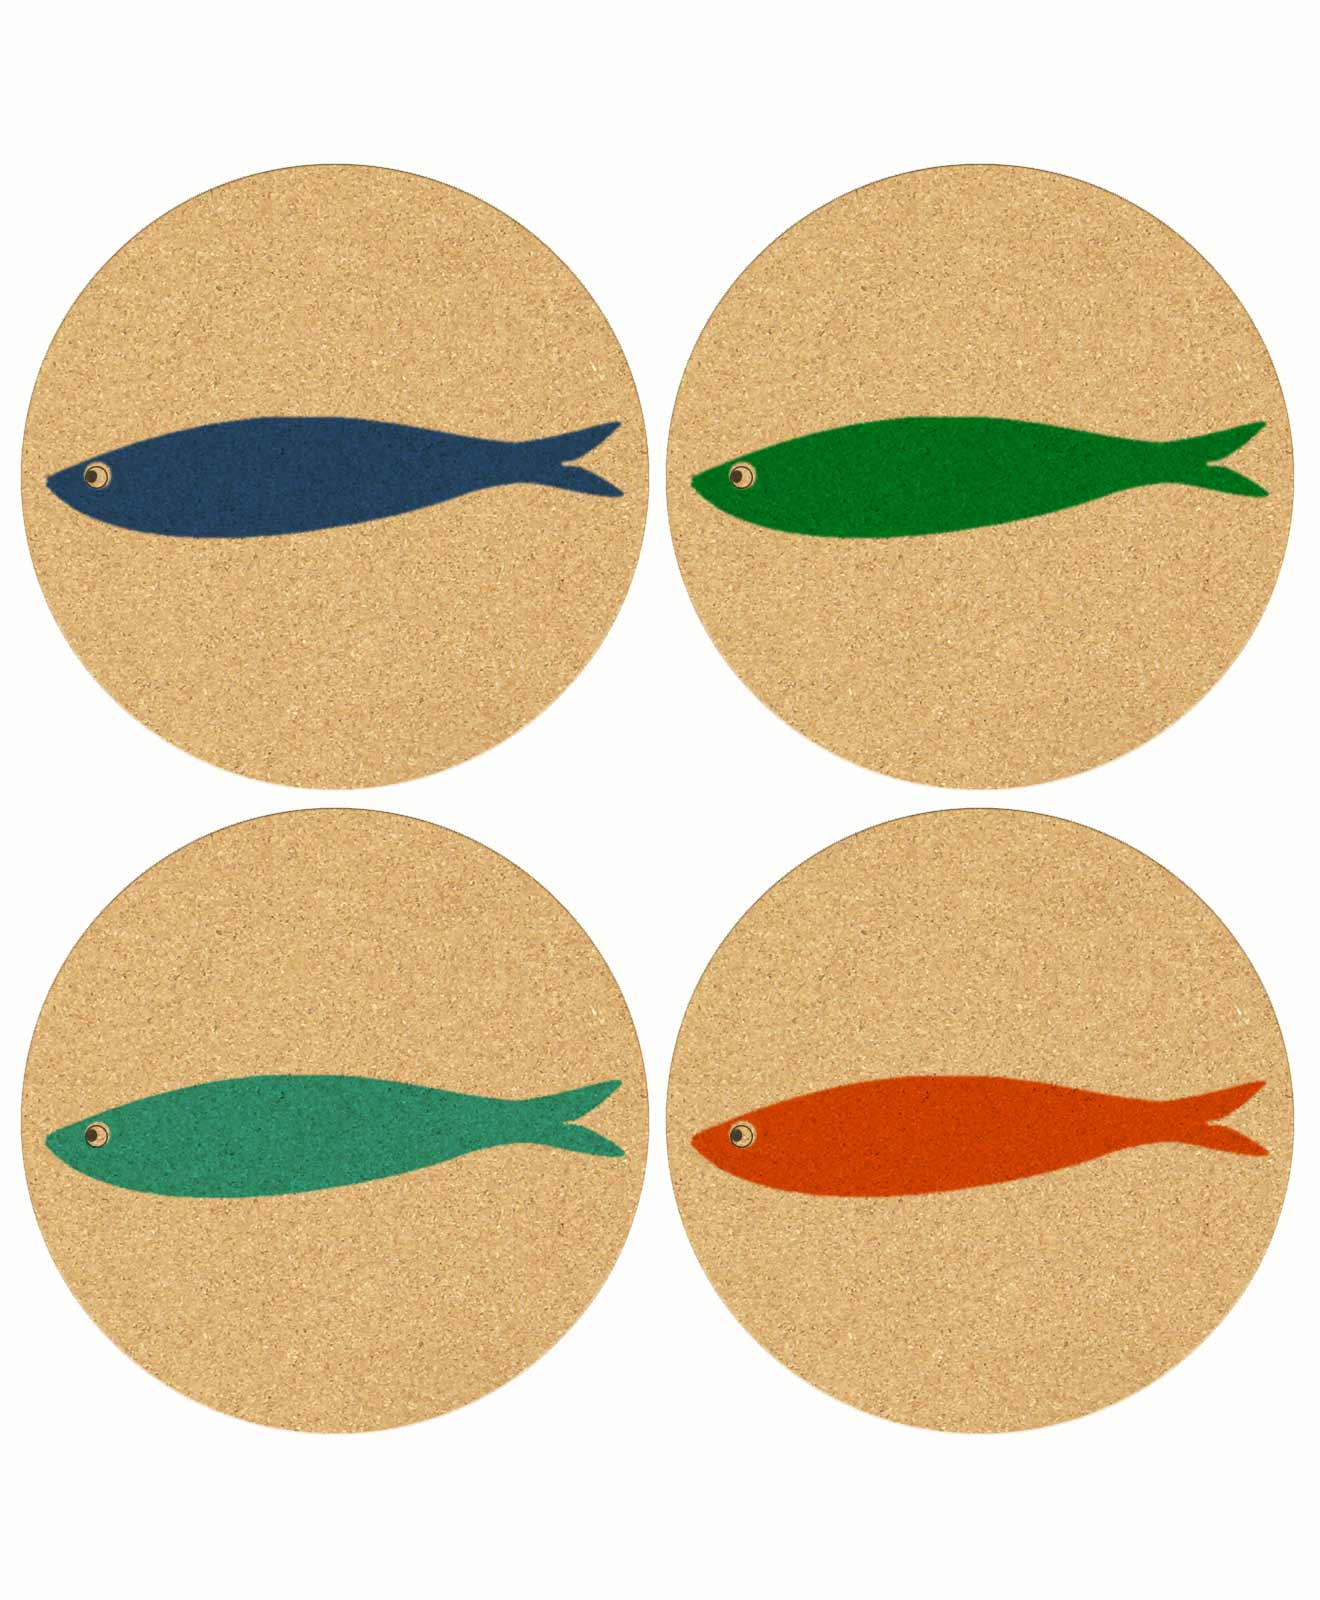 Cork Coasters Lonely Sardine